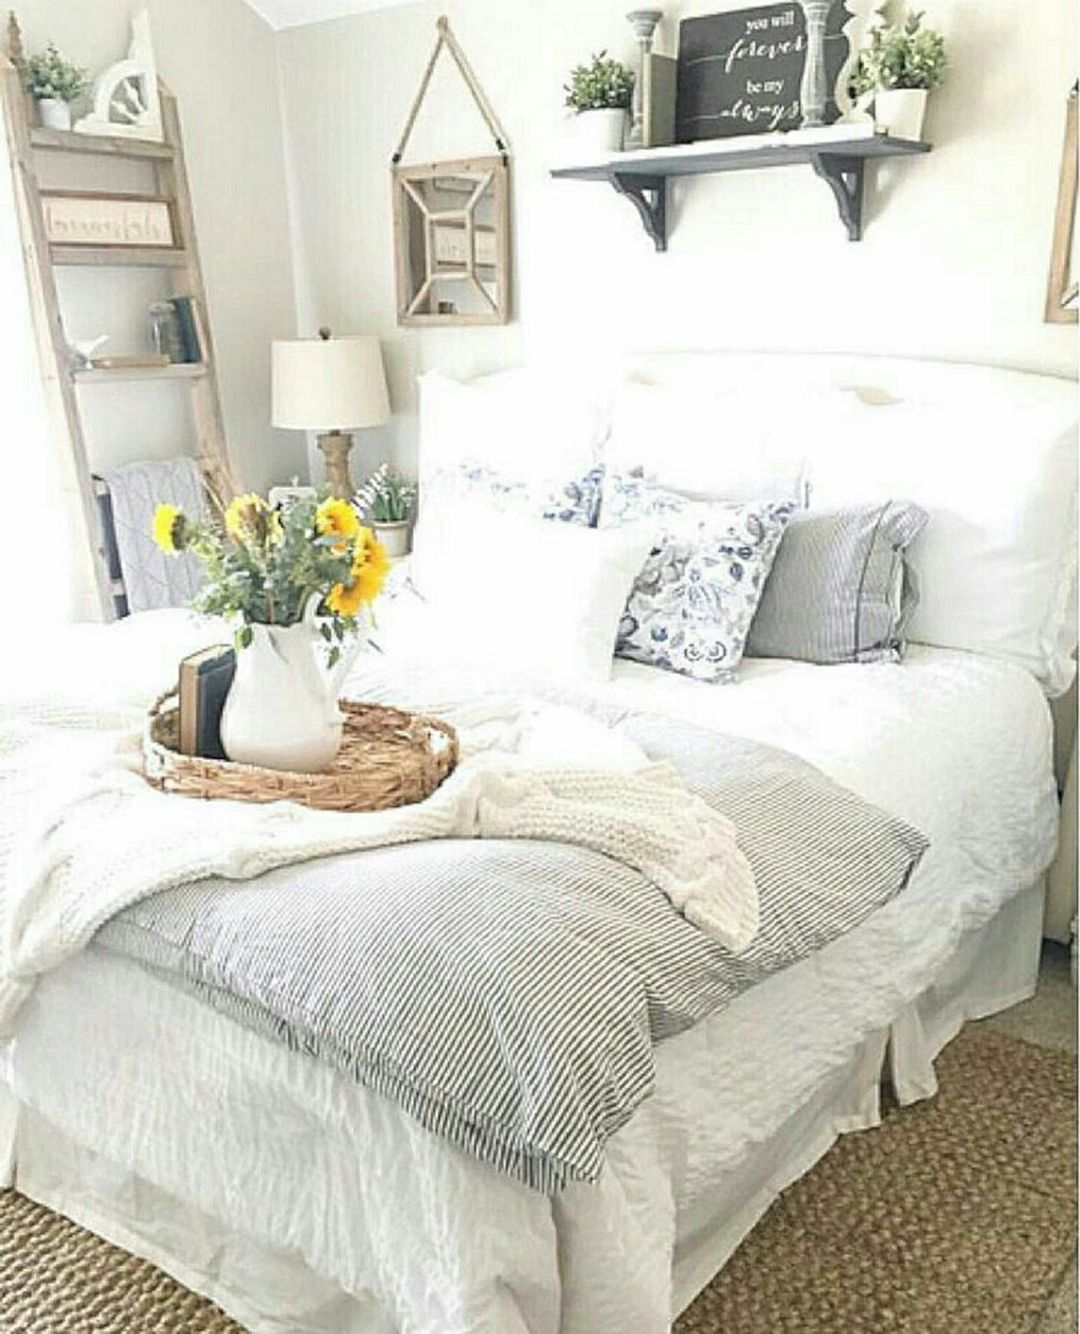 Cool 57 Cozy Farmhouse Guest Bedroom Design Ideas To Make Your Guest Feeling Satisfied Https